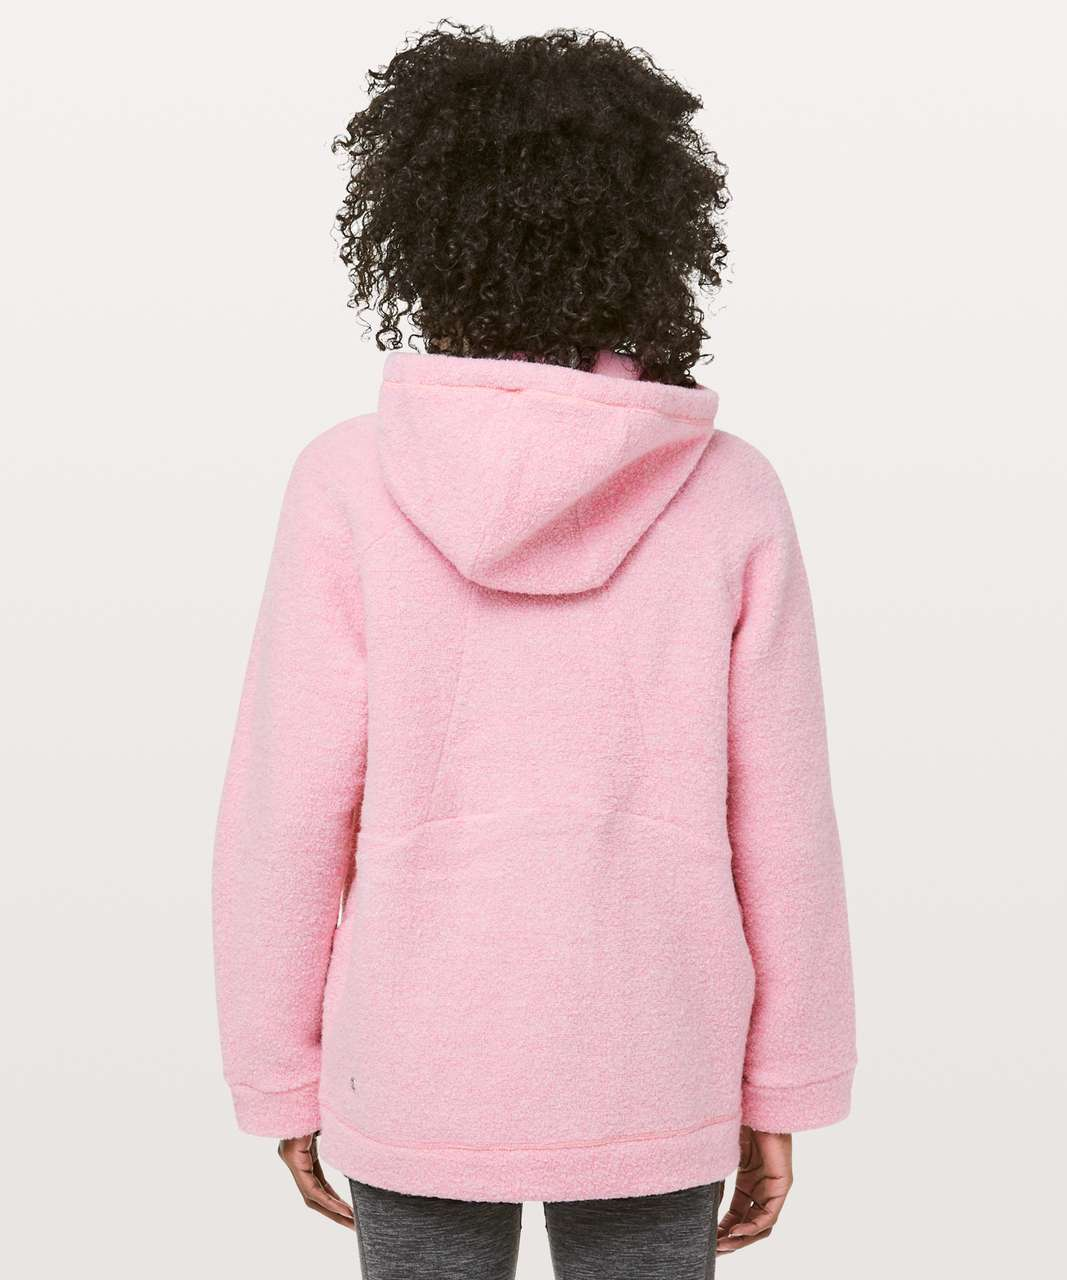 Lululemon So Sherpa Hooded Jacket - Heathered Pink Haze